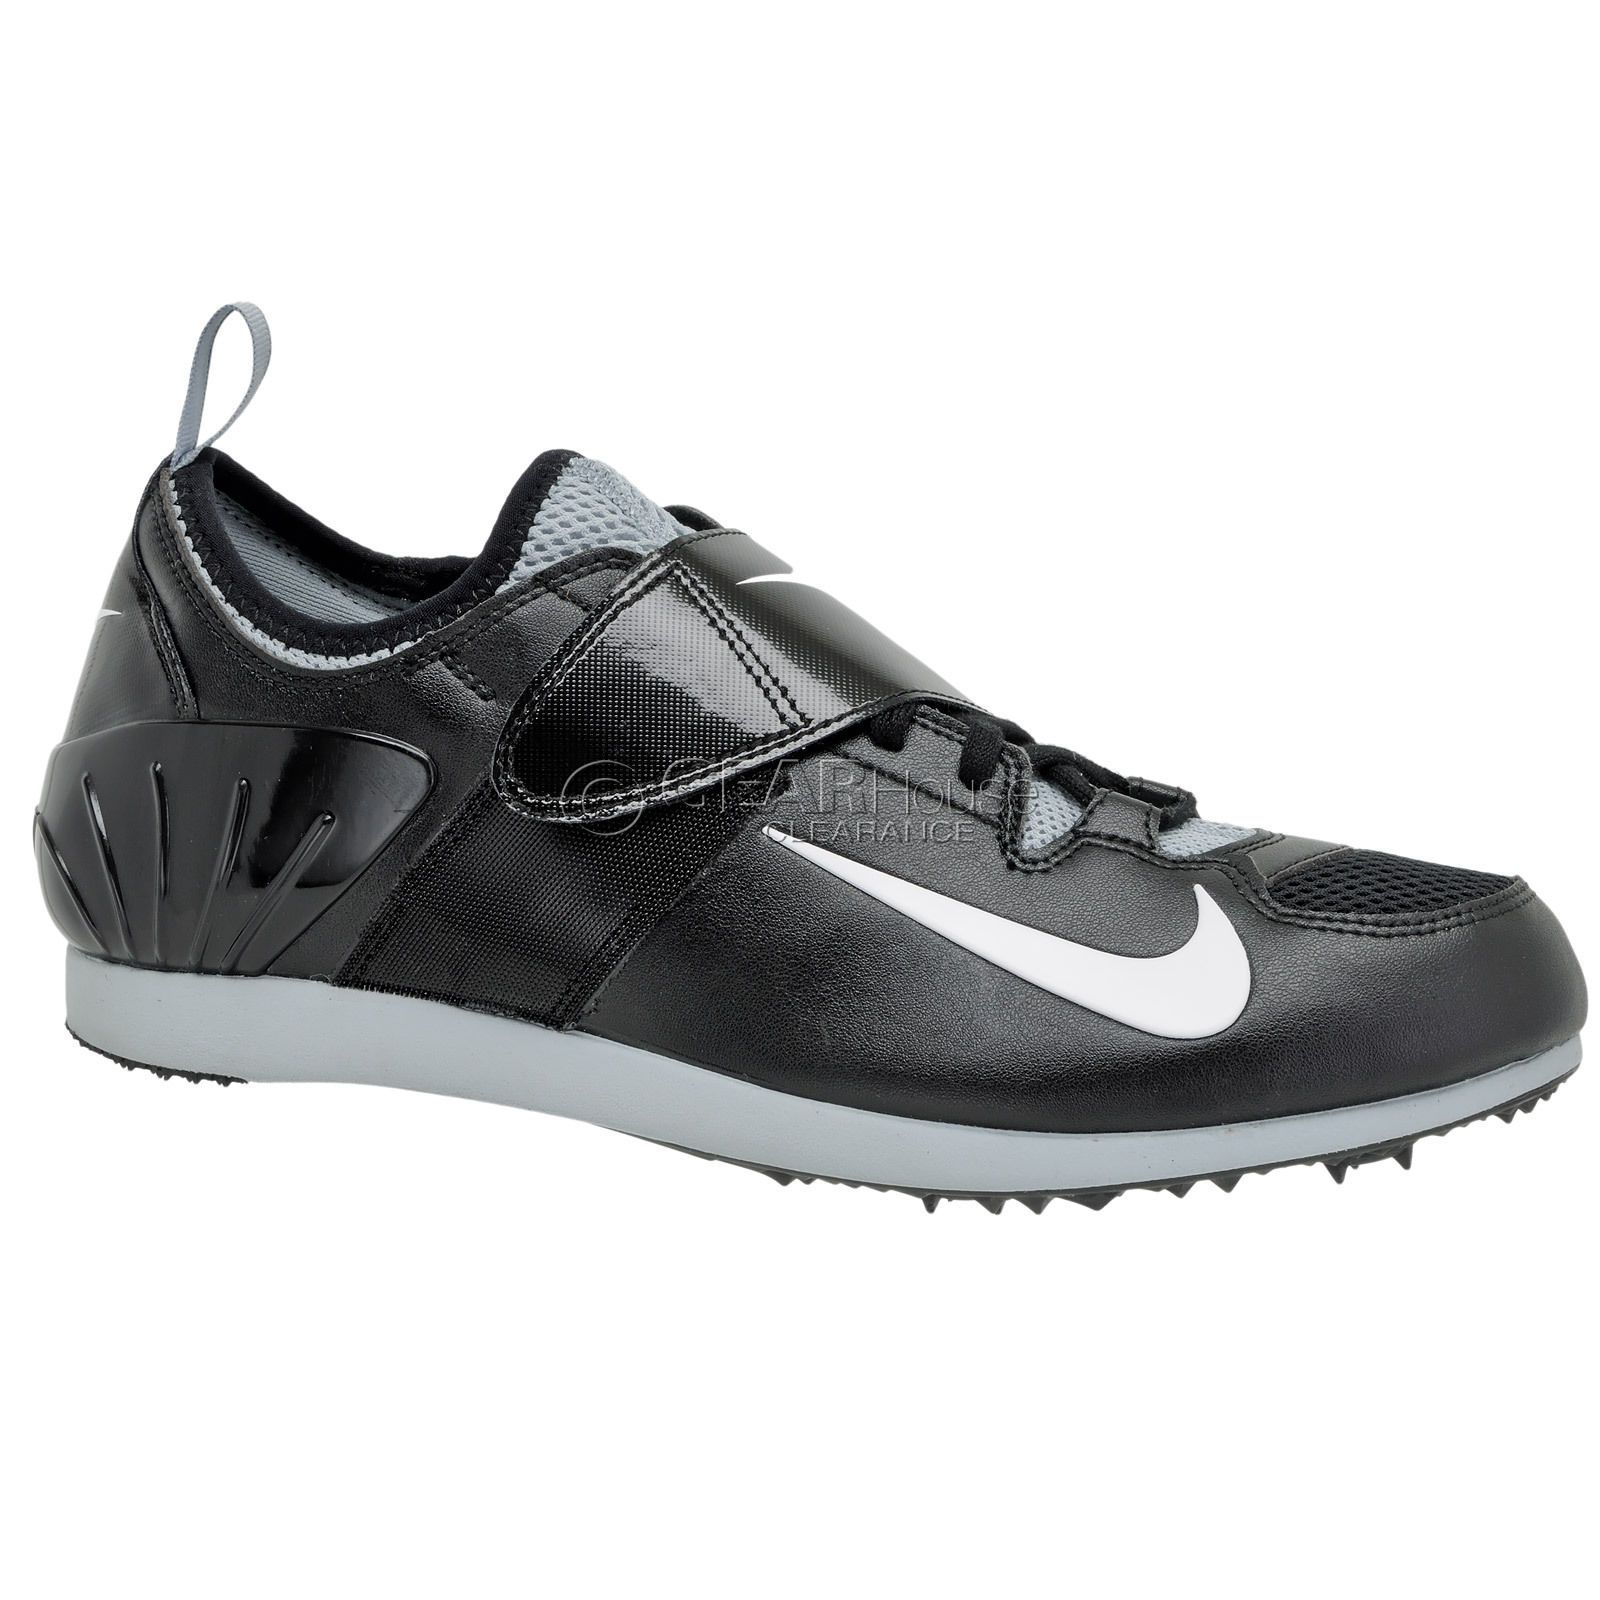 146ffb829d12f New Nike Zoom PV 2 II Track   Field Spikes Pole Vault Shoes Black   Mens  Size 12